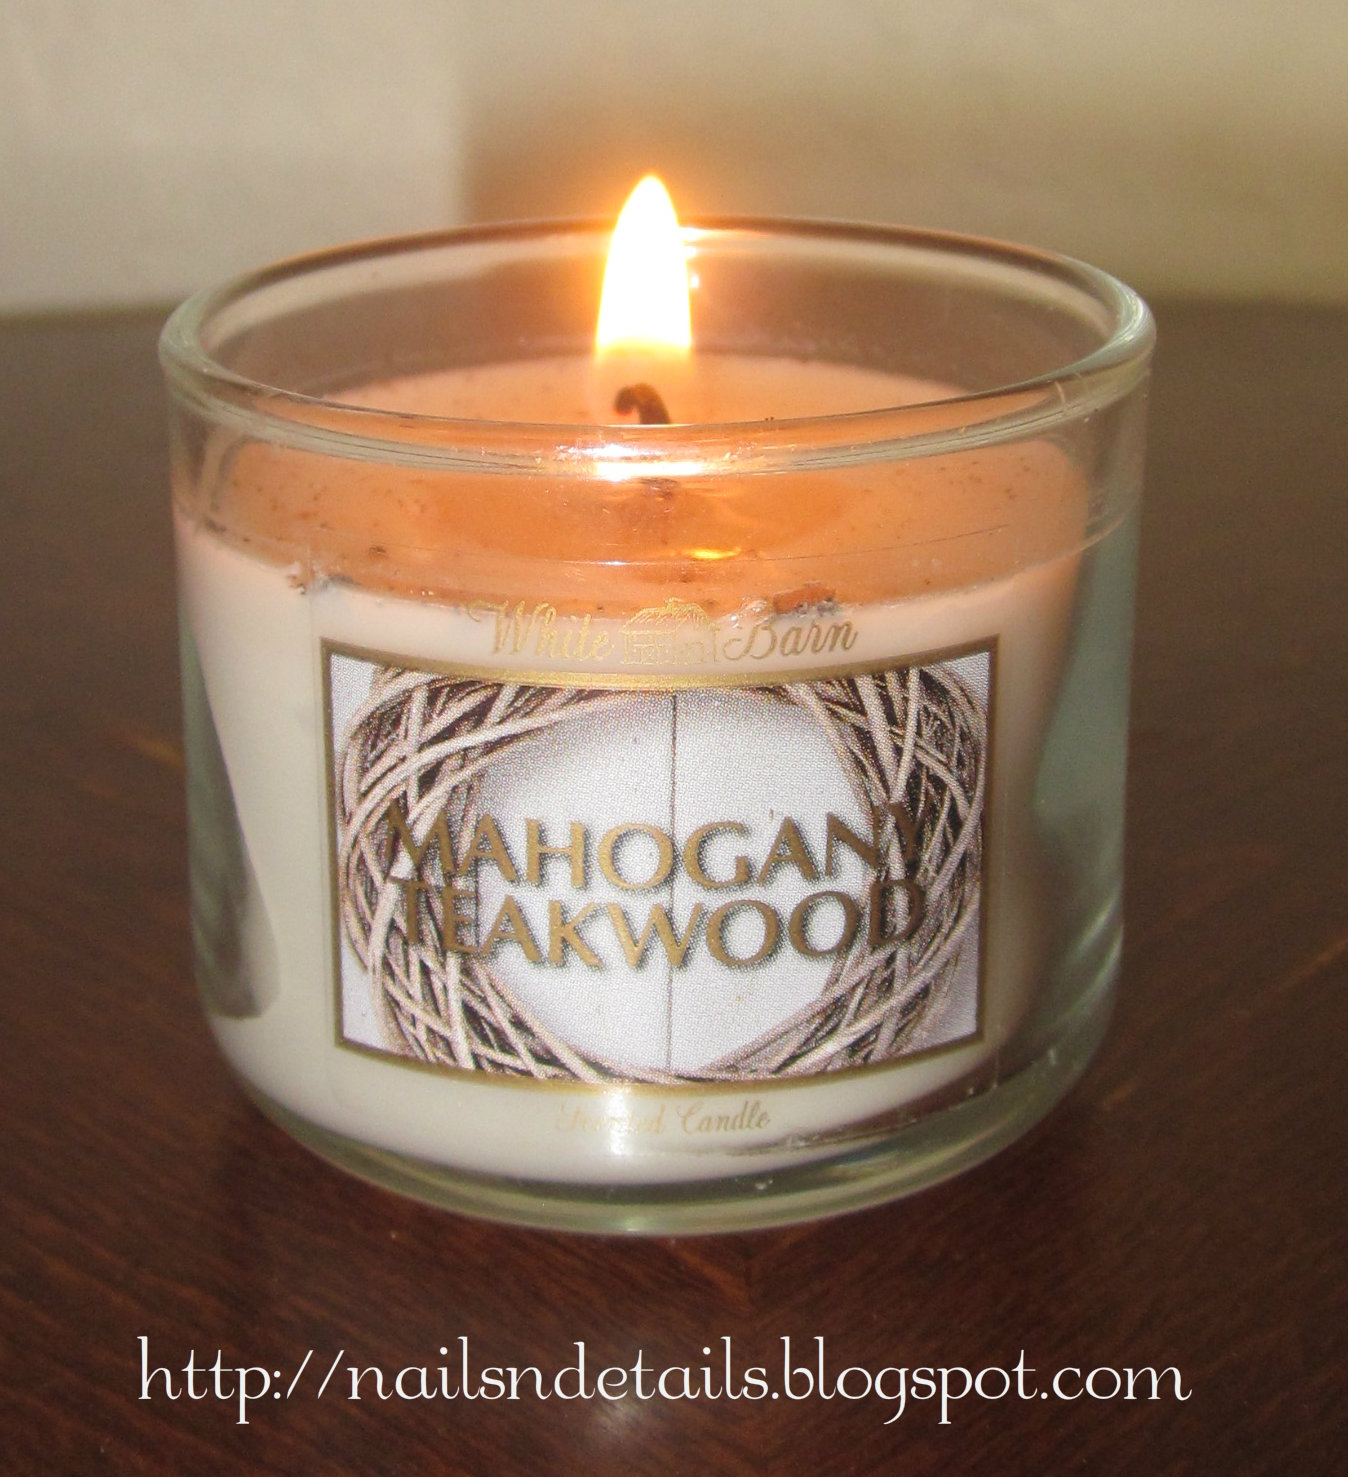 nails n details bath body works fall mini candle. Black Bedroom Furniture Sets. Home Design Ideas